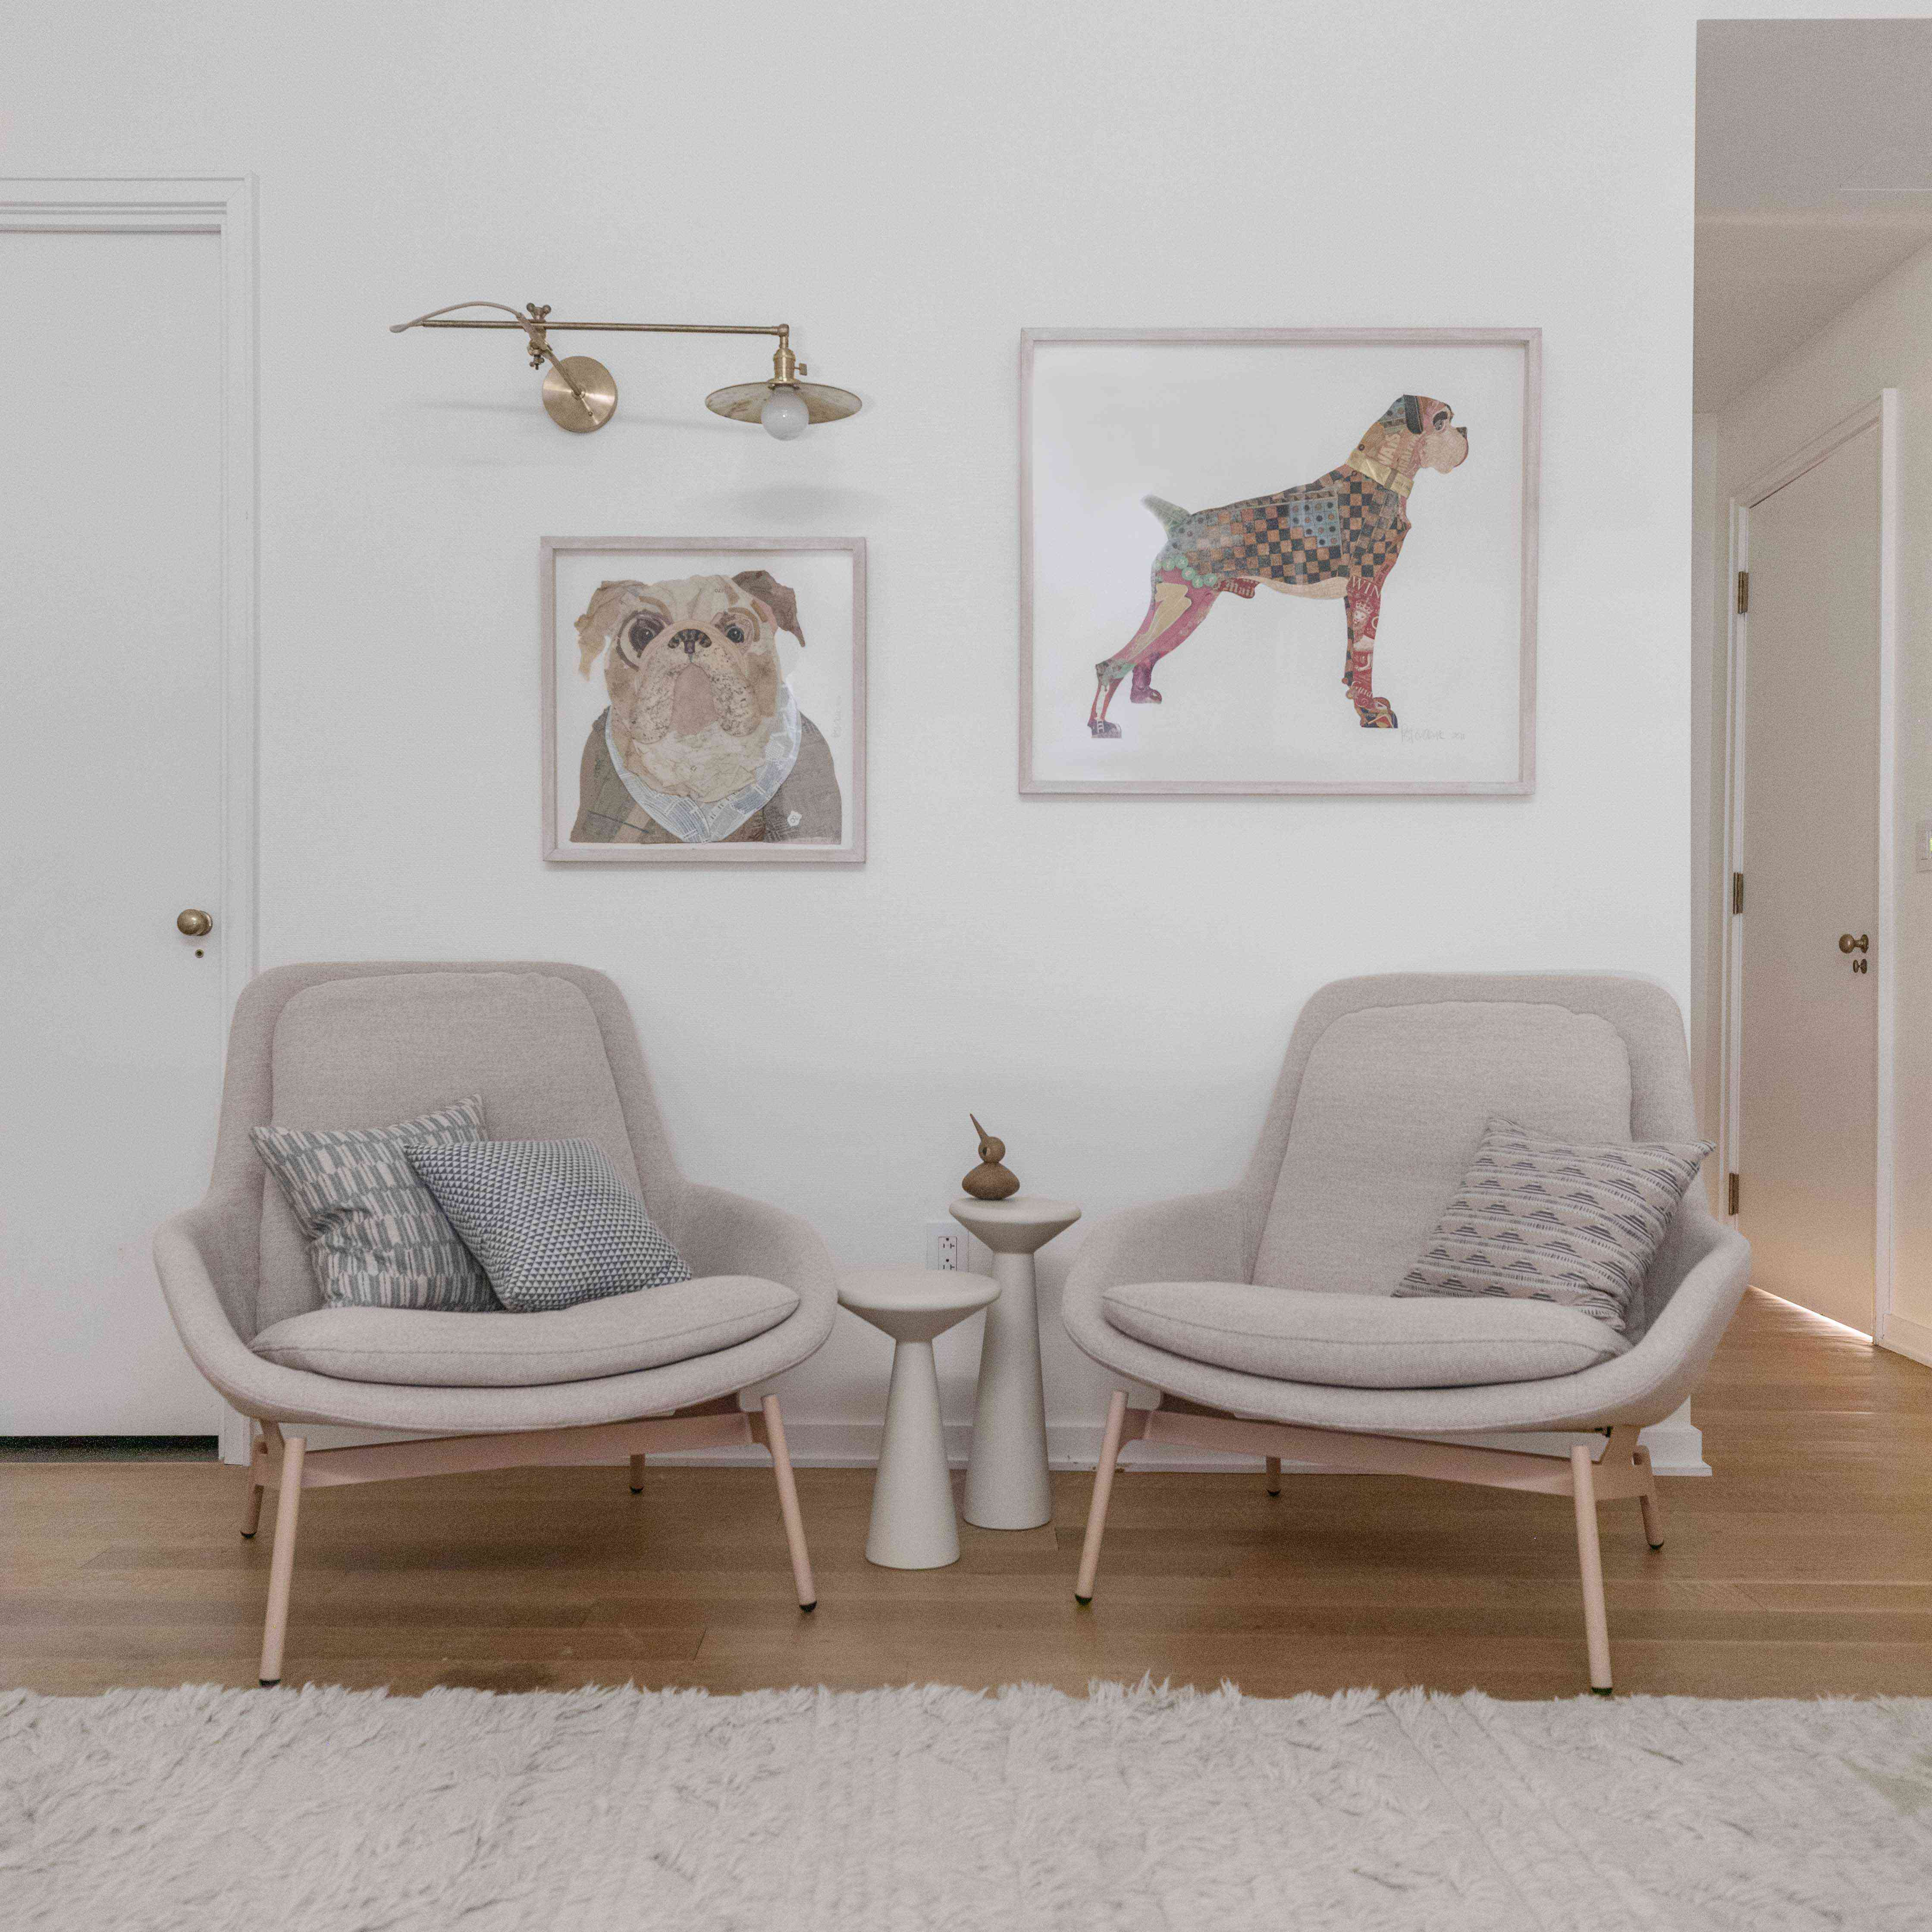 yael weiss home tour - children's bedroom reading chairs